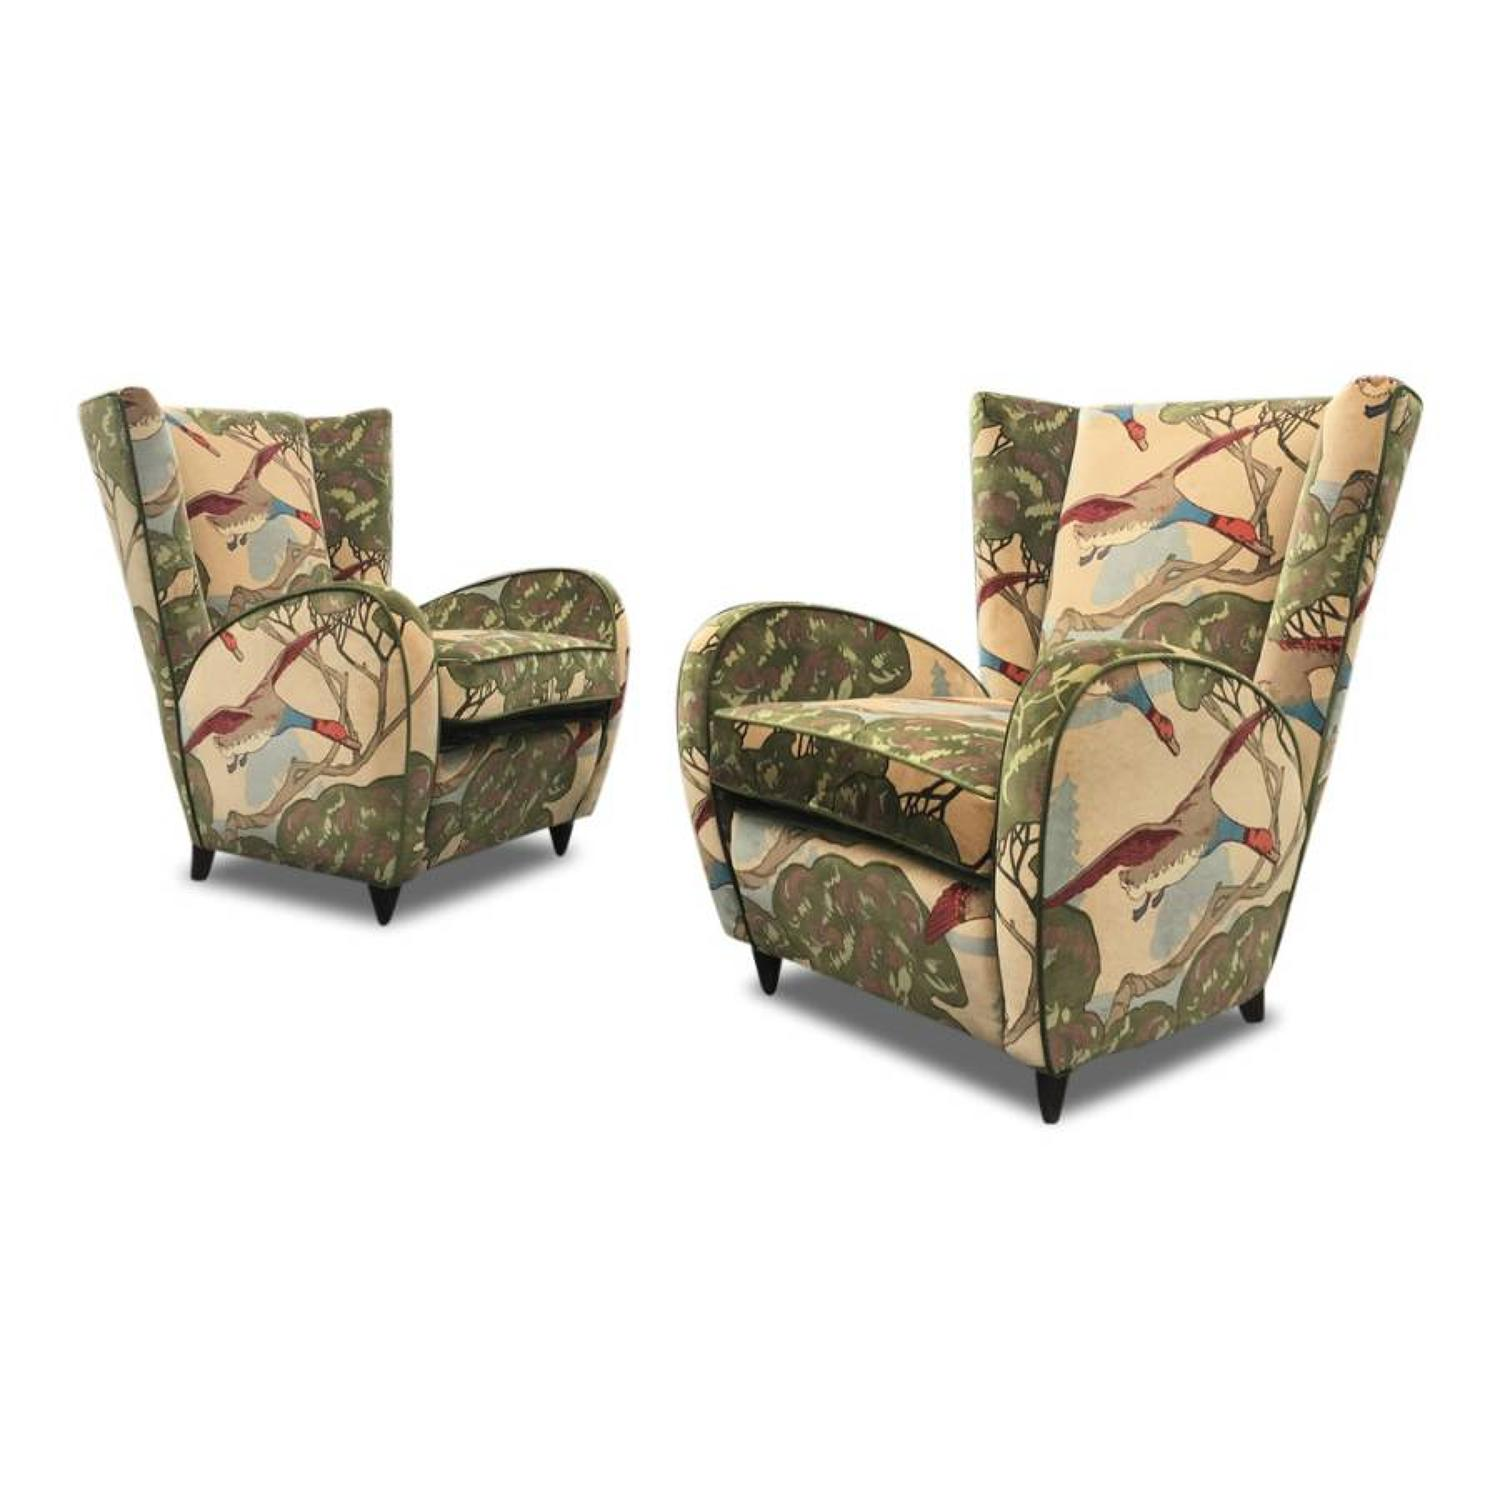 A pair of 1950s Italian armchairs in Mulberry Home Velvet